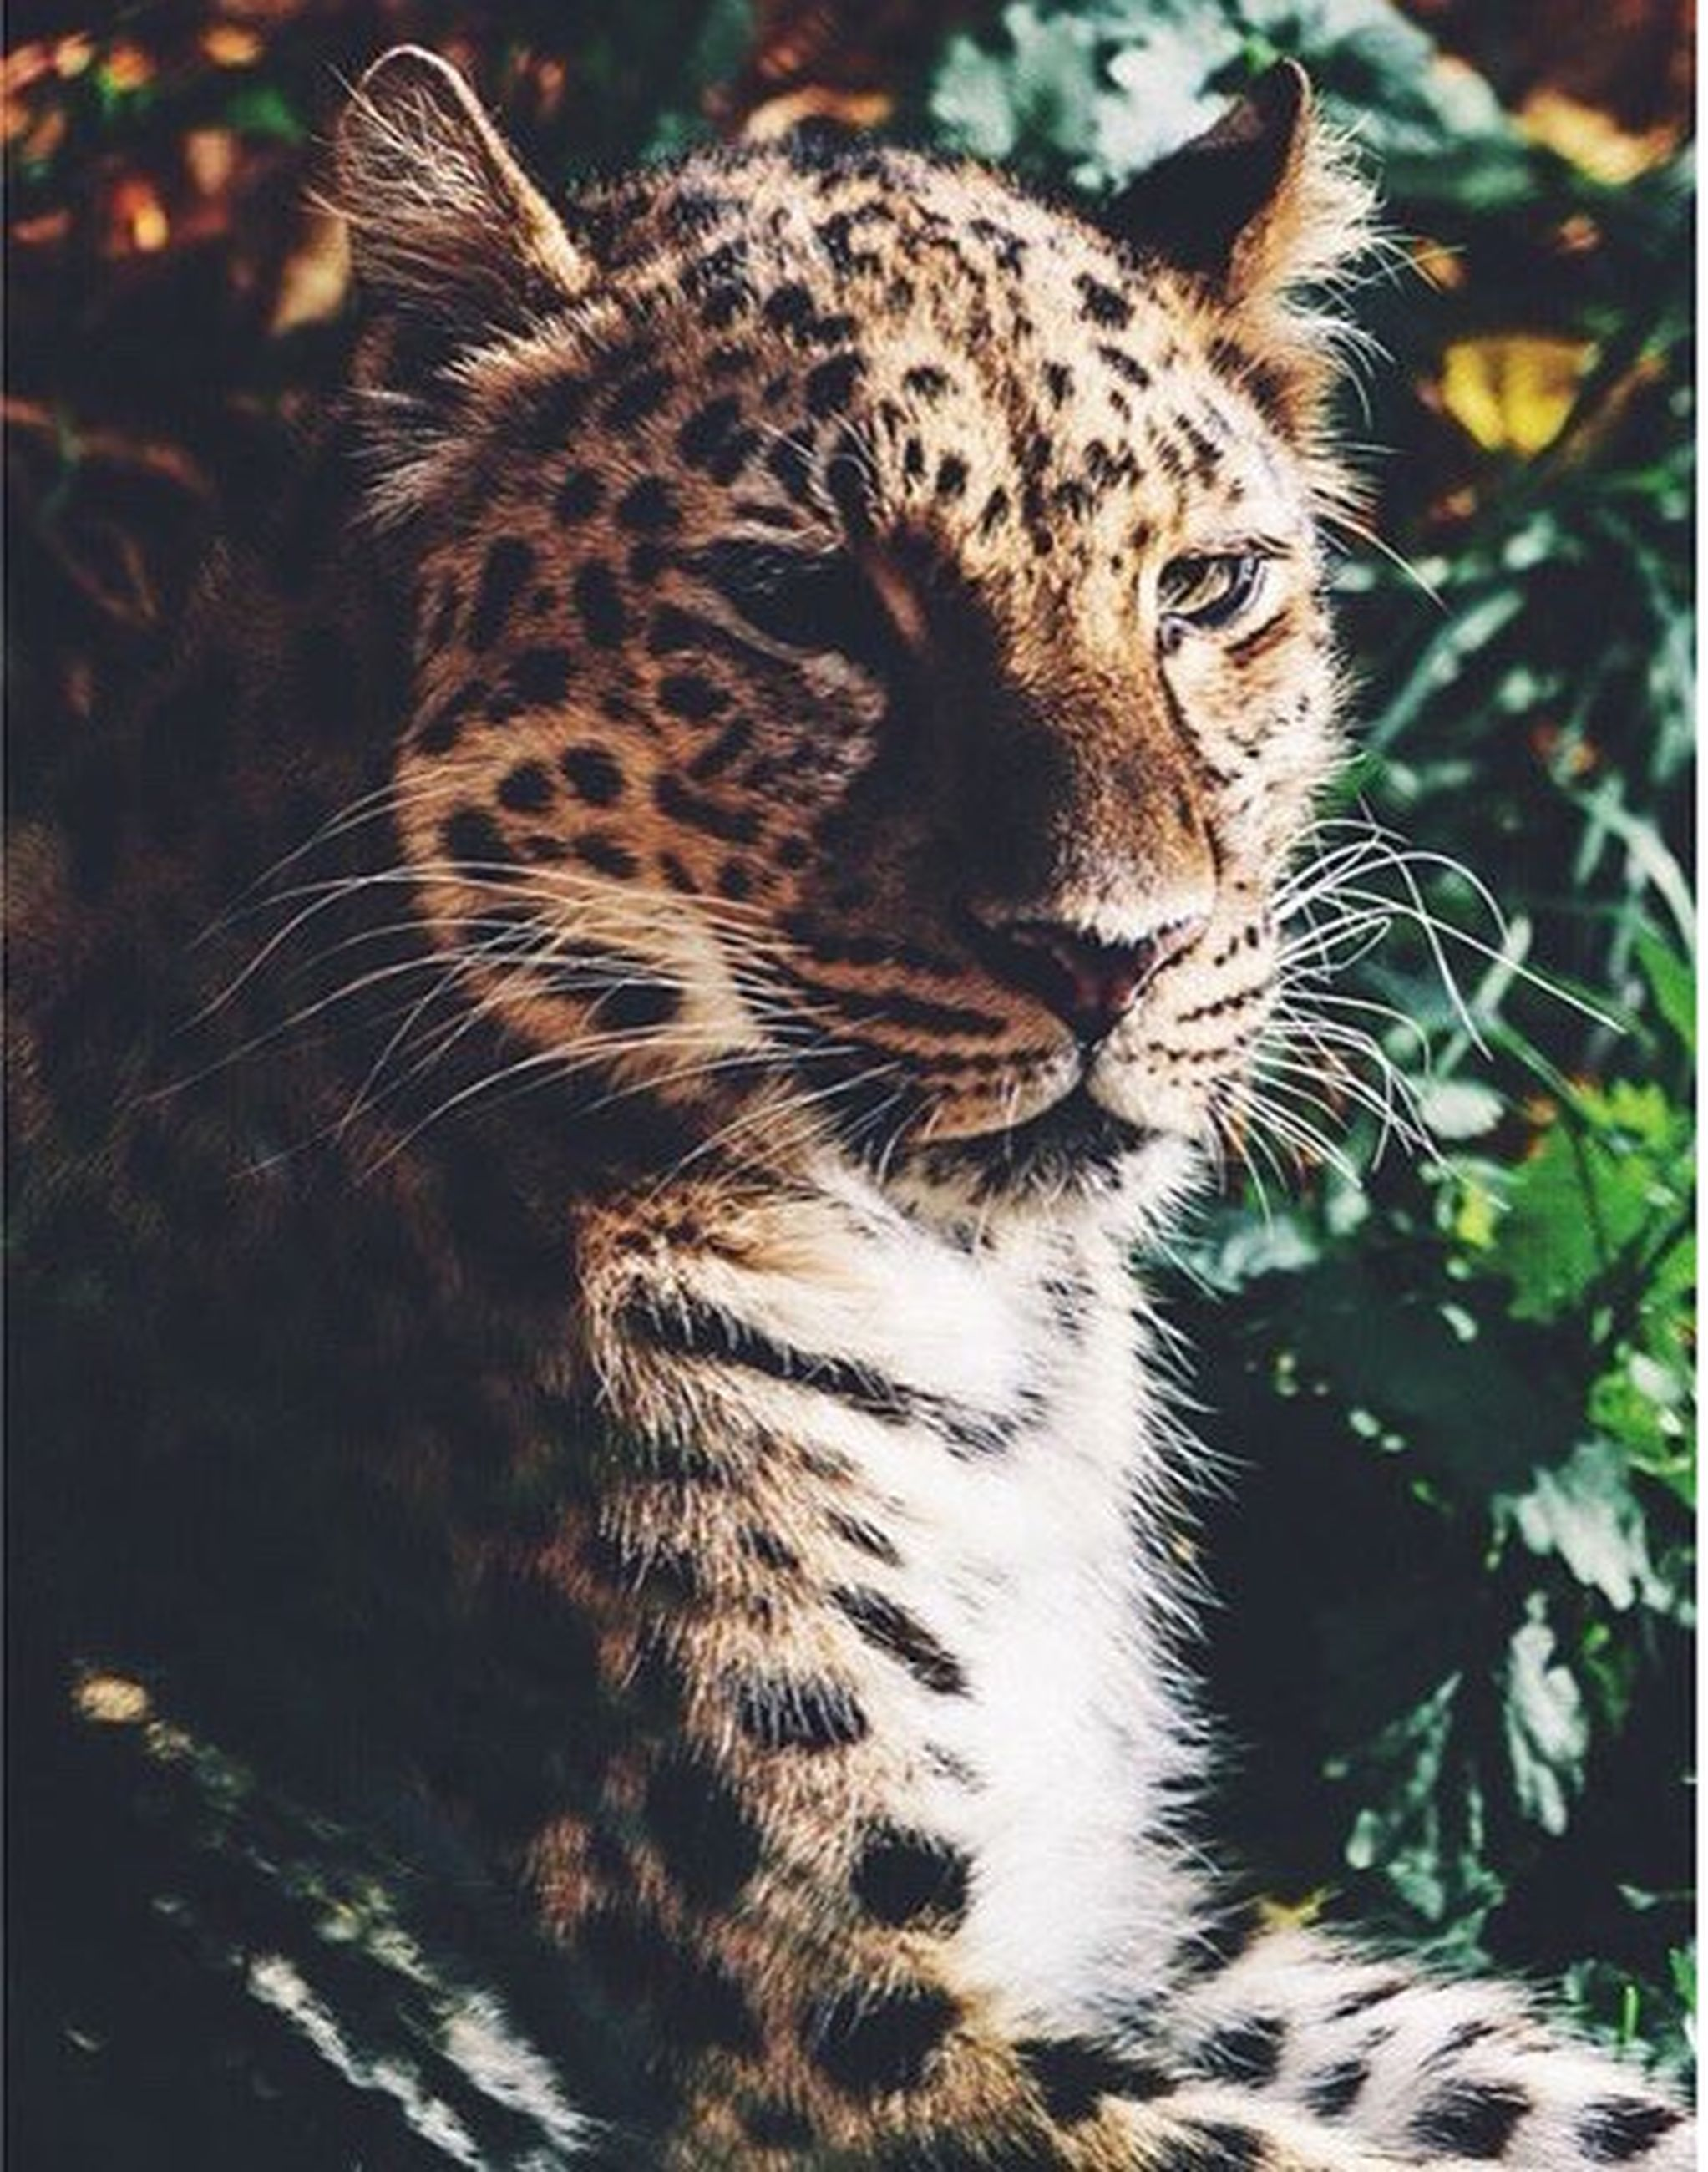 animal themes, one animal, mammal, animals in the wild, animal markings, feline, tiger, wildlife, whisker, natural pattern, undomesticated cat, domestic cat, carnivora, focus on foreground, leopard, safari animals, big cat, close-up, relaxation, zoo